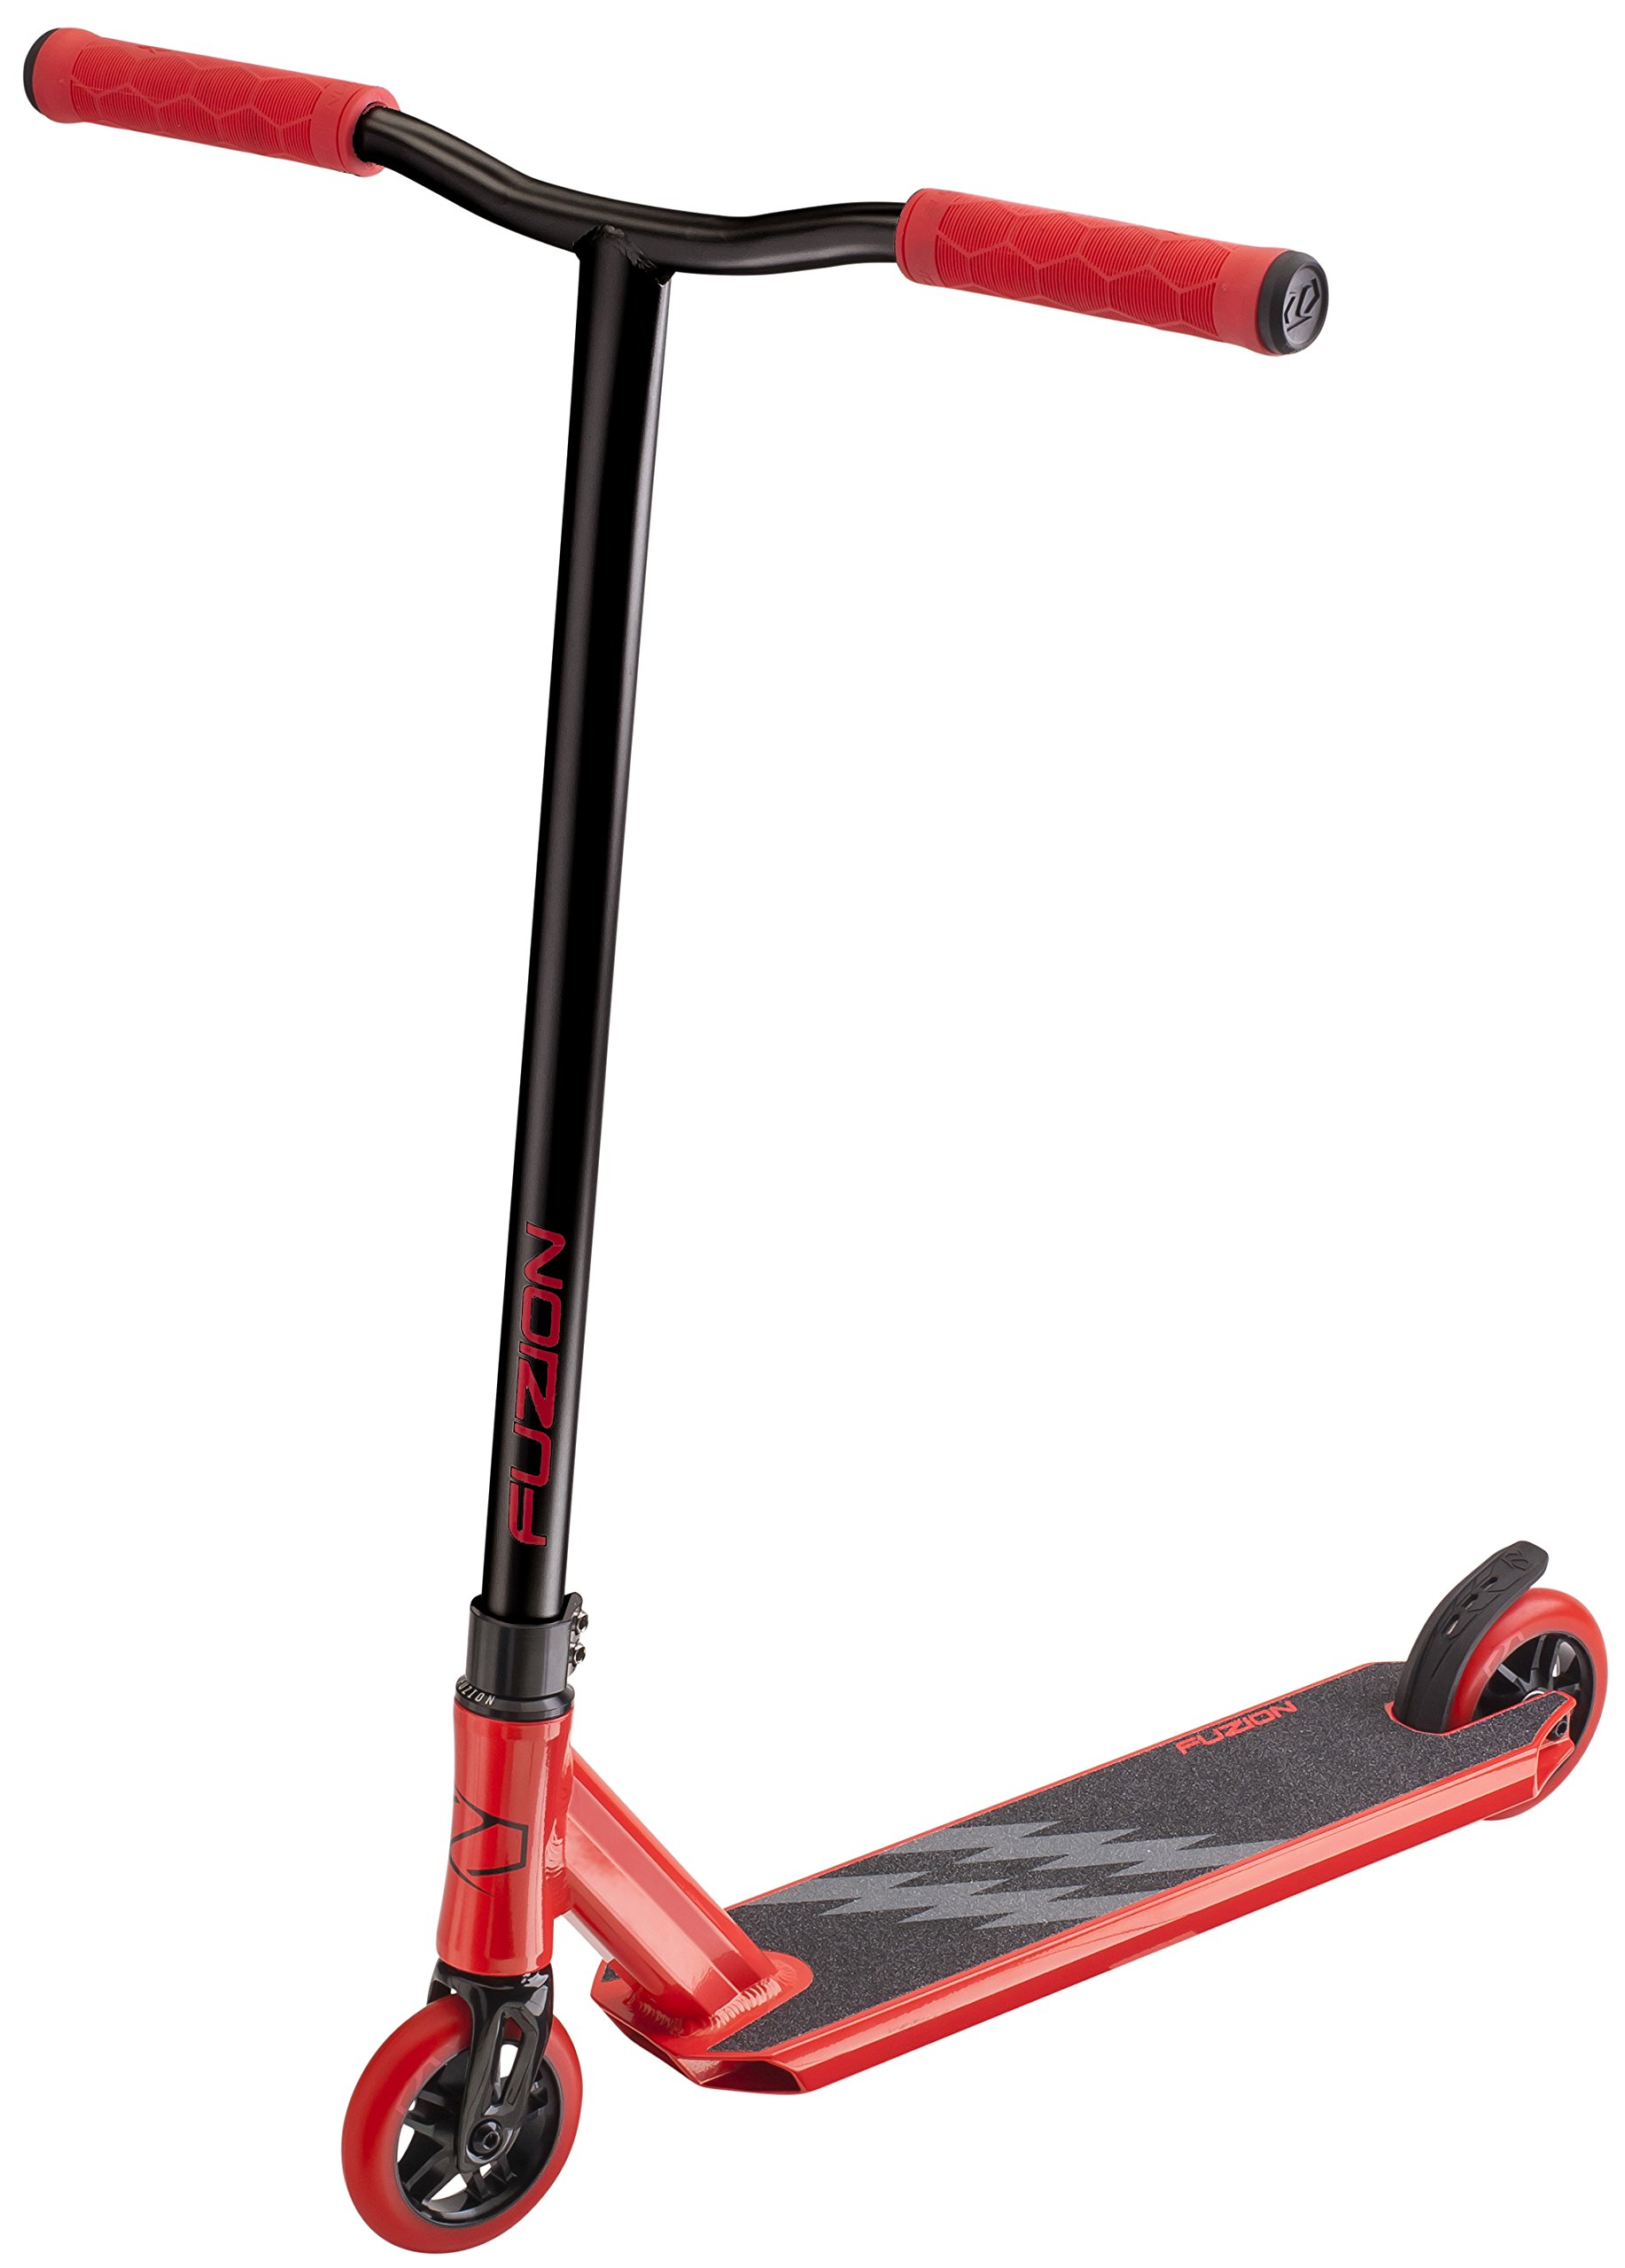 Fuzion Z250 Pro Scooters - Trick Scooter - Intermediate and Beginner Stunt Scooters for Kids 8 Years and Up, Teens and Adults – Durable, Smooth, Freestyle Kick Scooter for Boys and Girls (Red V2)